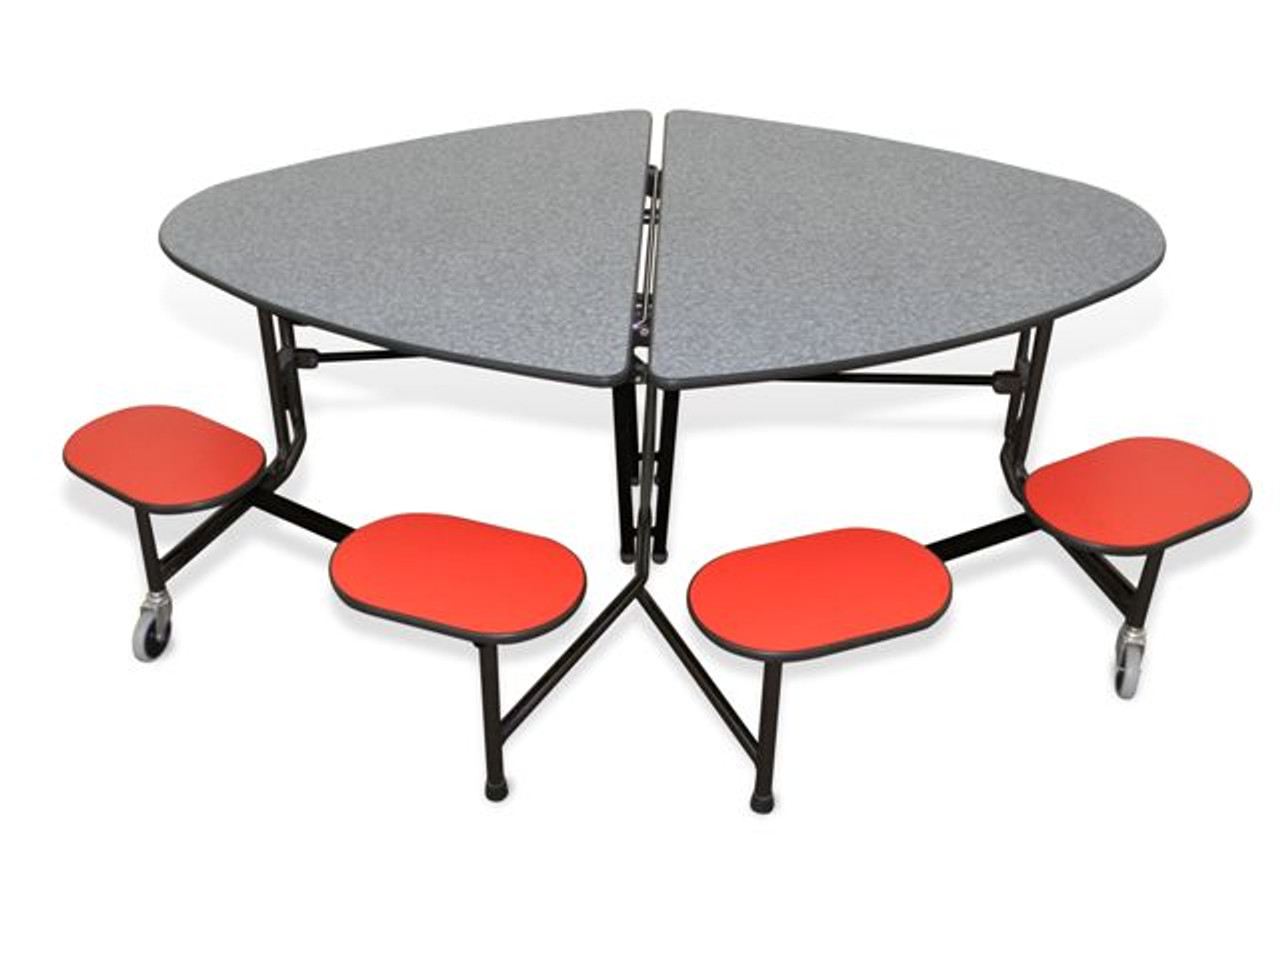 Mitchell Furniture Systems ST 4872 C4 8 Elliptical Table Wth 8 Seats And  Chrome Legs L Affordable Wall Mounted Table U0026 Mitchell Furniture Systems  Products